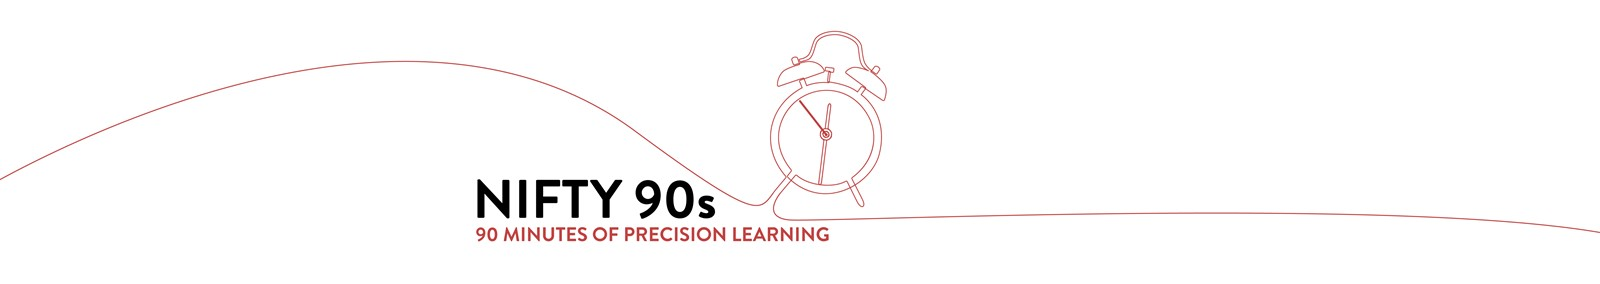 Nifty 90s - 90 minutes of precision learning